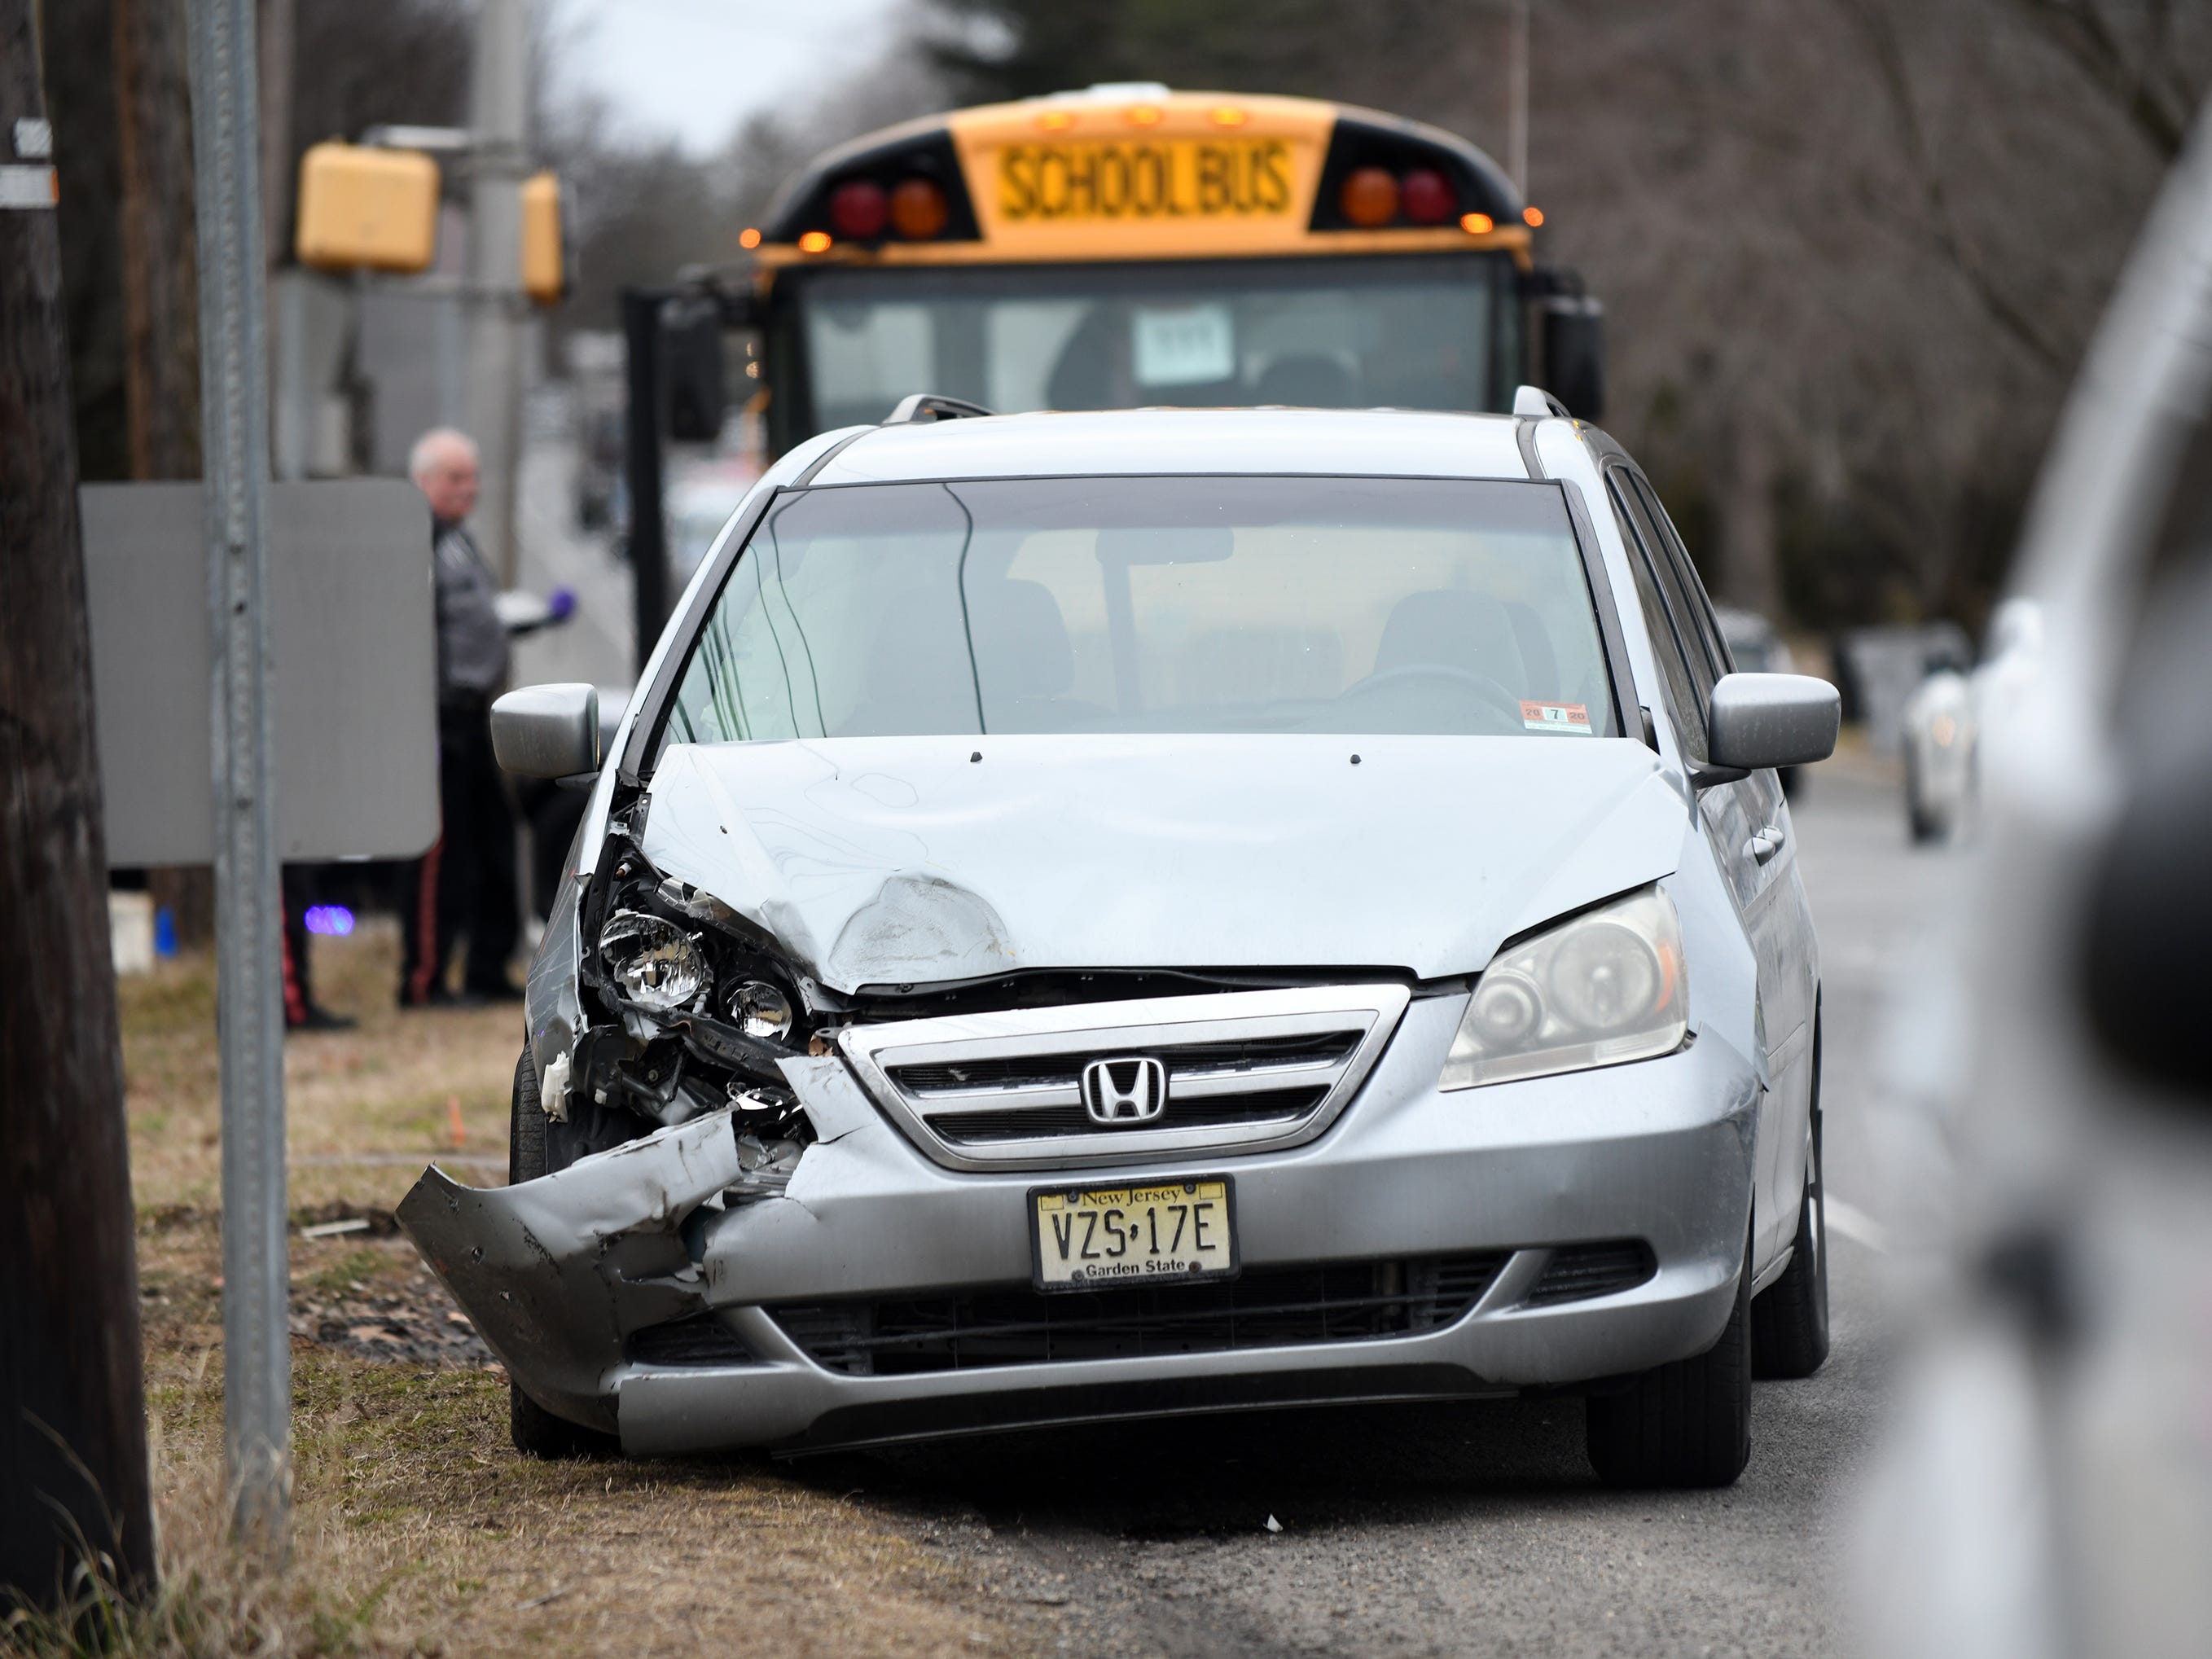 Police were on the scene following a school bus accident at the corner of Landis and Brewster in Vineland on Wednesday, Feb. 6, 2019.